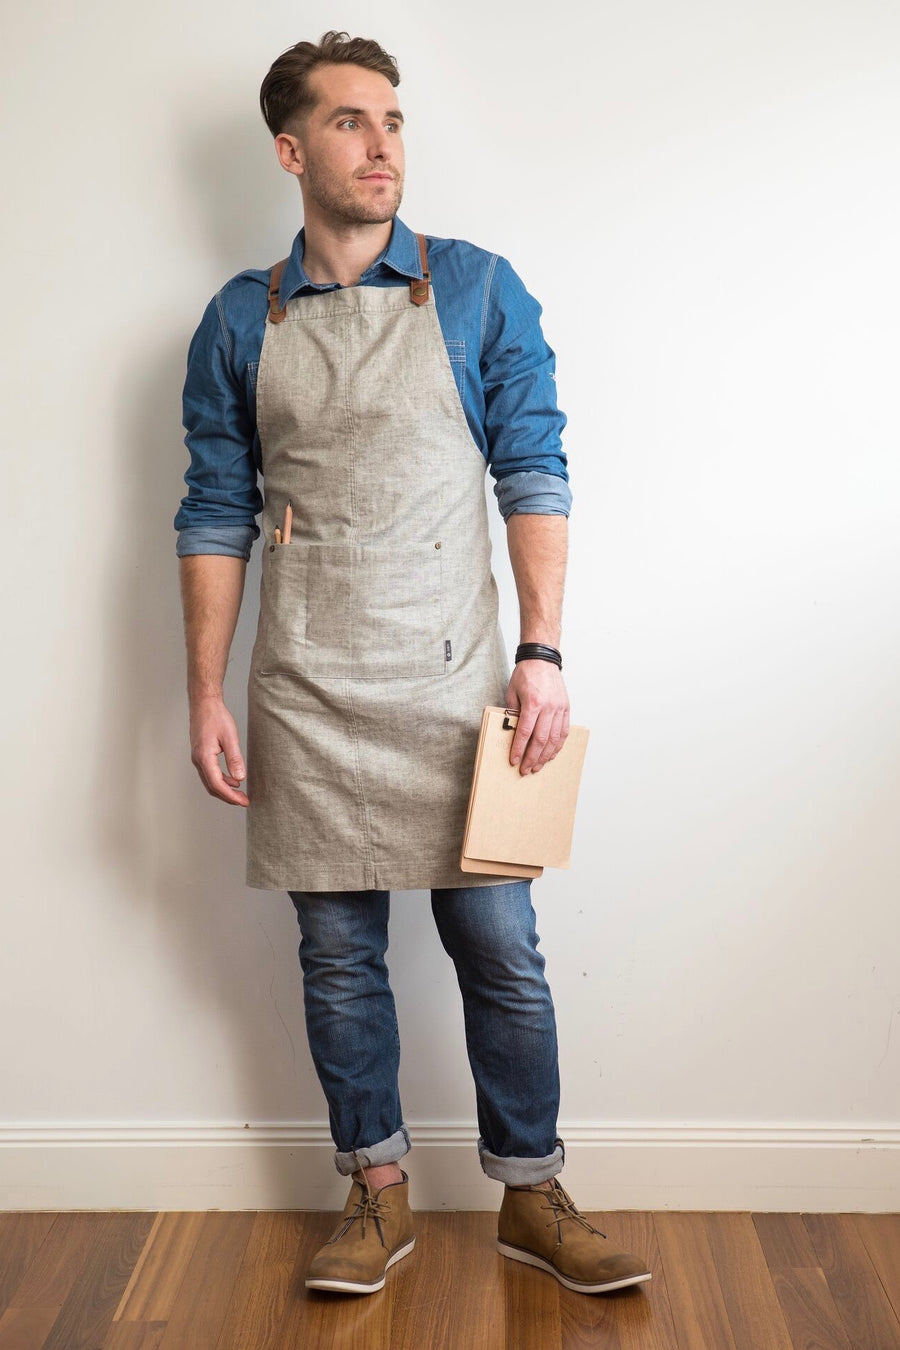 THEODORE Apron with PU Leather Strap - Taupe Linen